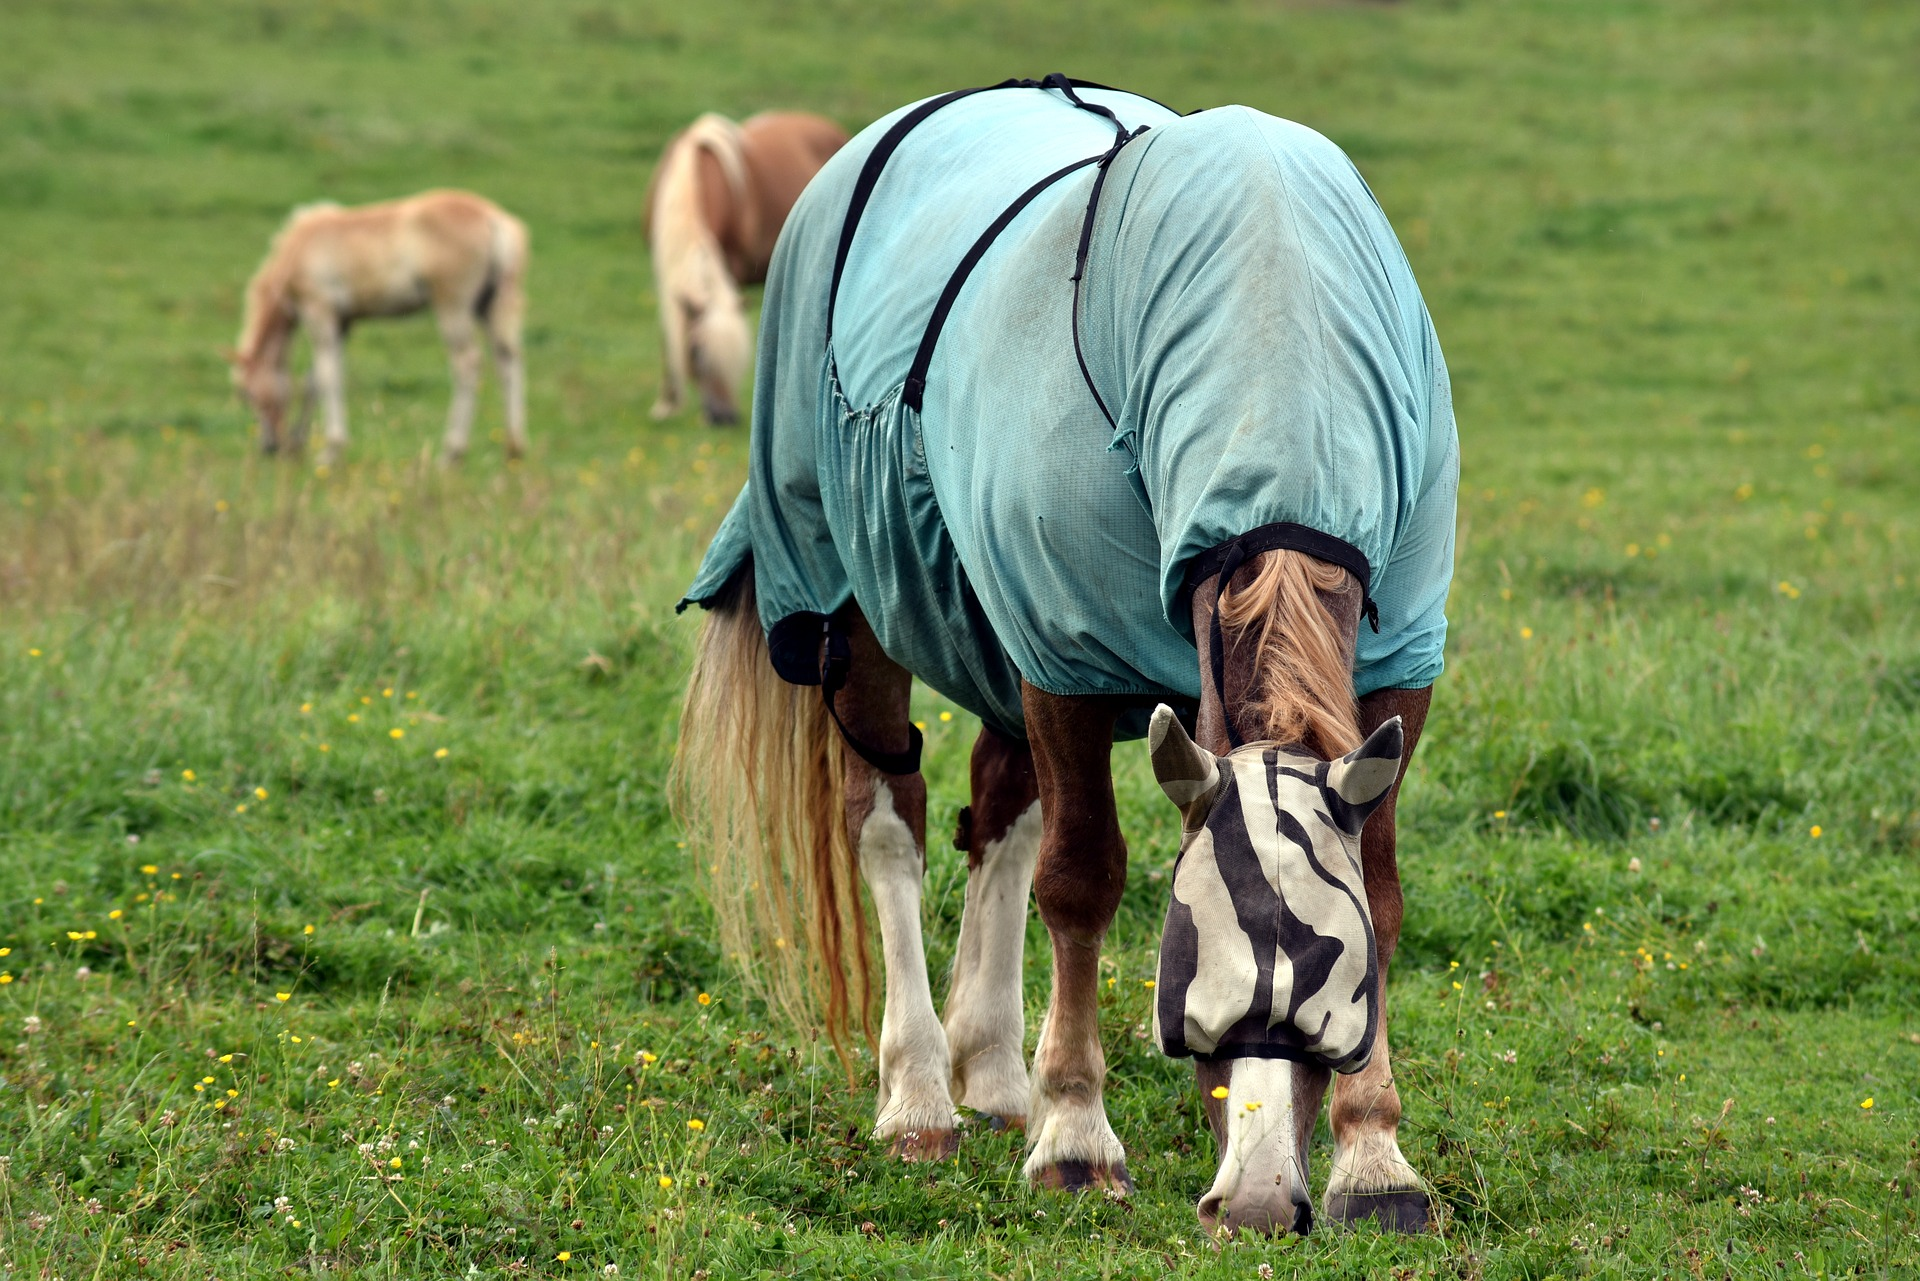 A flysheet can help reduce the risk of sweet itch in horses.